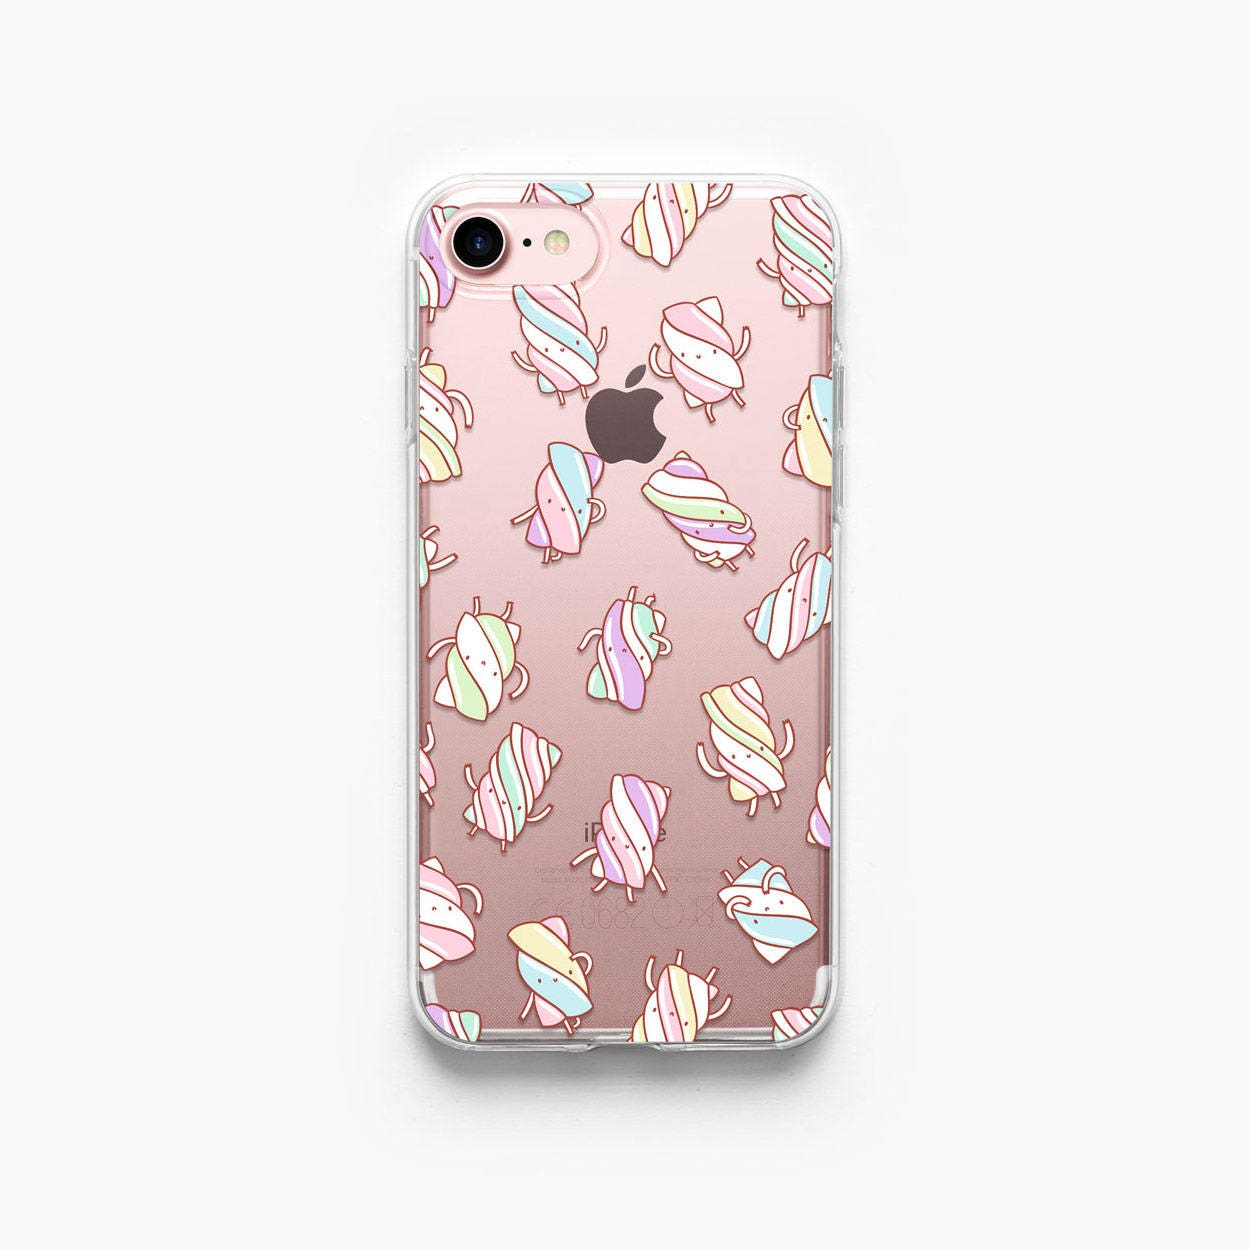 tumblr iphone cases iphone 7 marshmallow iphone 6 iphone 7 plus 3688